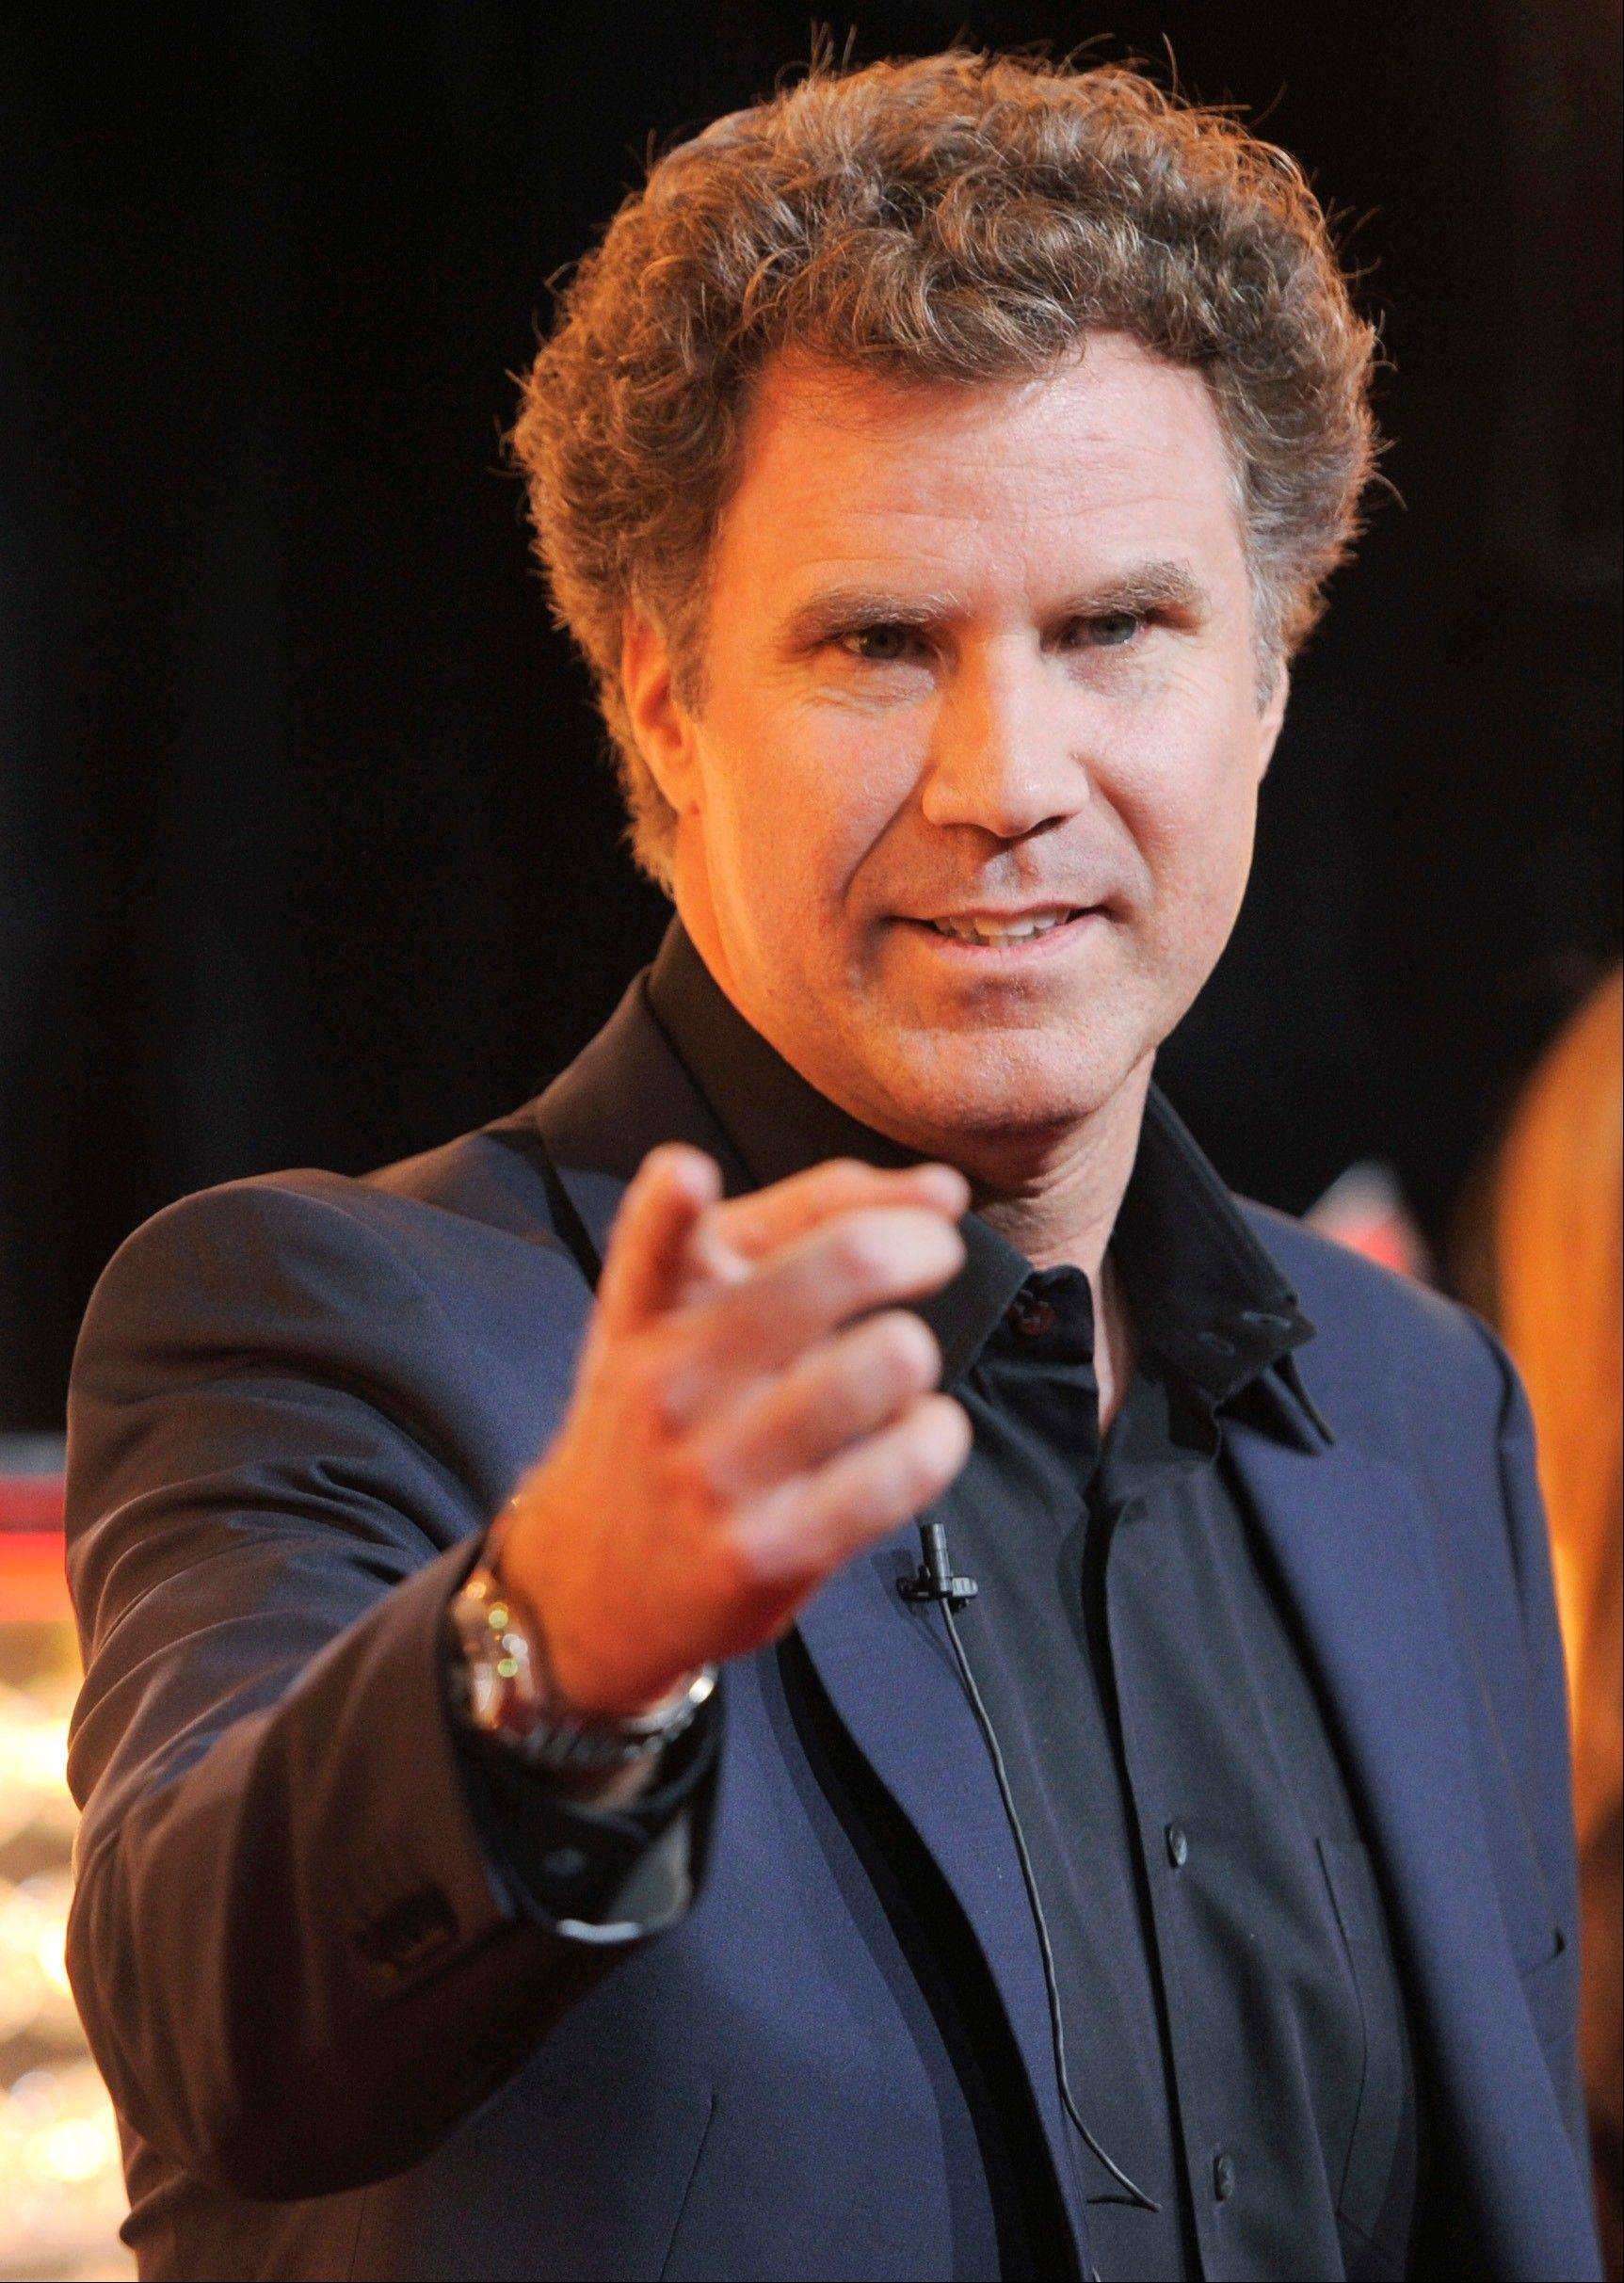 The Kennedy Center in Washington has announced a lineup of star comedians who will perform in Will Ferrell�s honor for the Mark Twain Prize for American Humor.